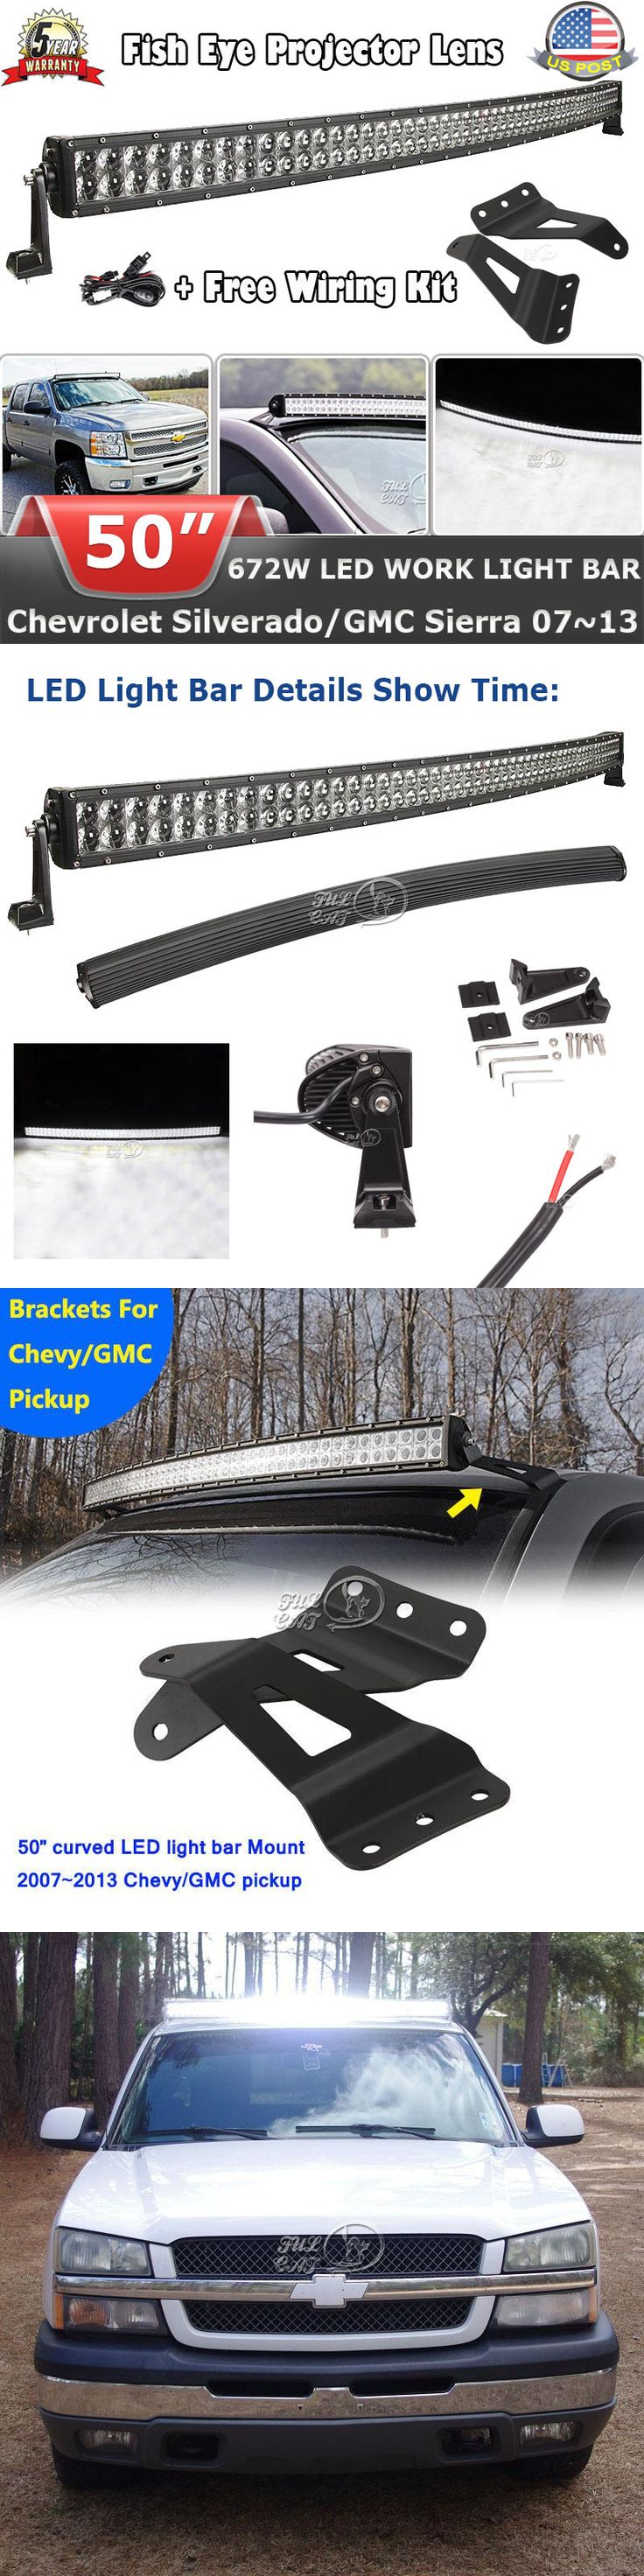 Car Lighting: Cree 50Inch 672W Curved Led Light Bar+Mount Bracket Fit For Chevy Silverado 1500 -> BUY IT NOW ONLY: $119.99 on eBay!